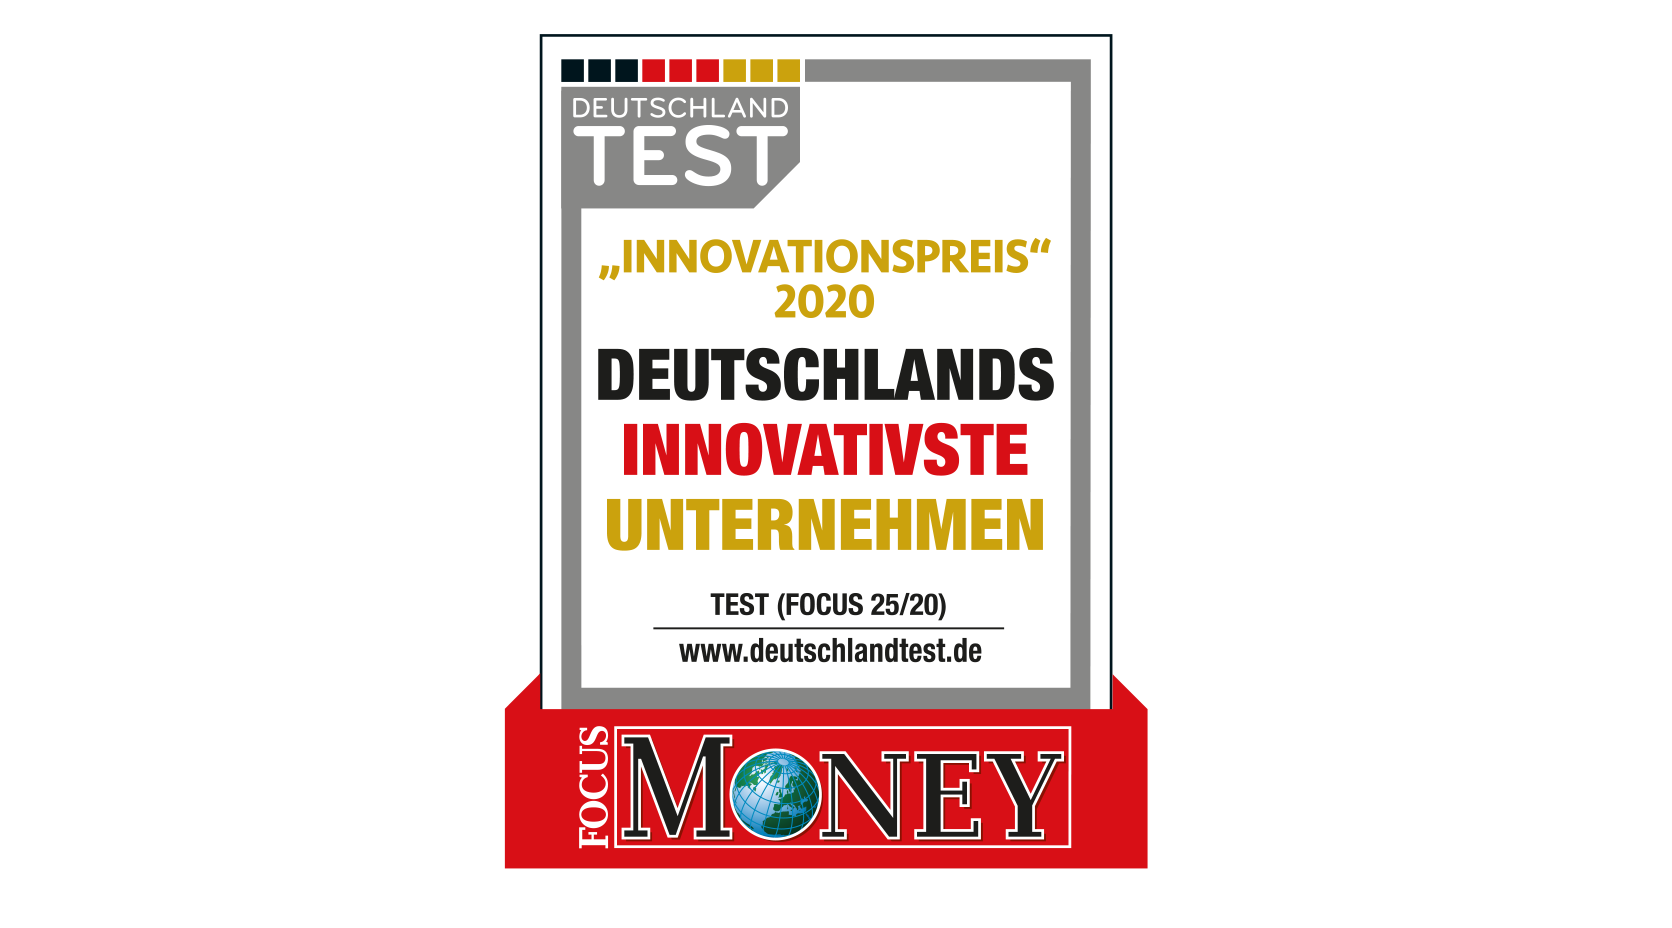 Focus Money Innovationspreis 2020: Deutschlands Innovativste Unternehmen